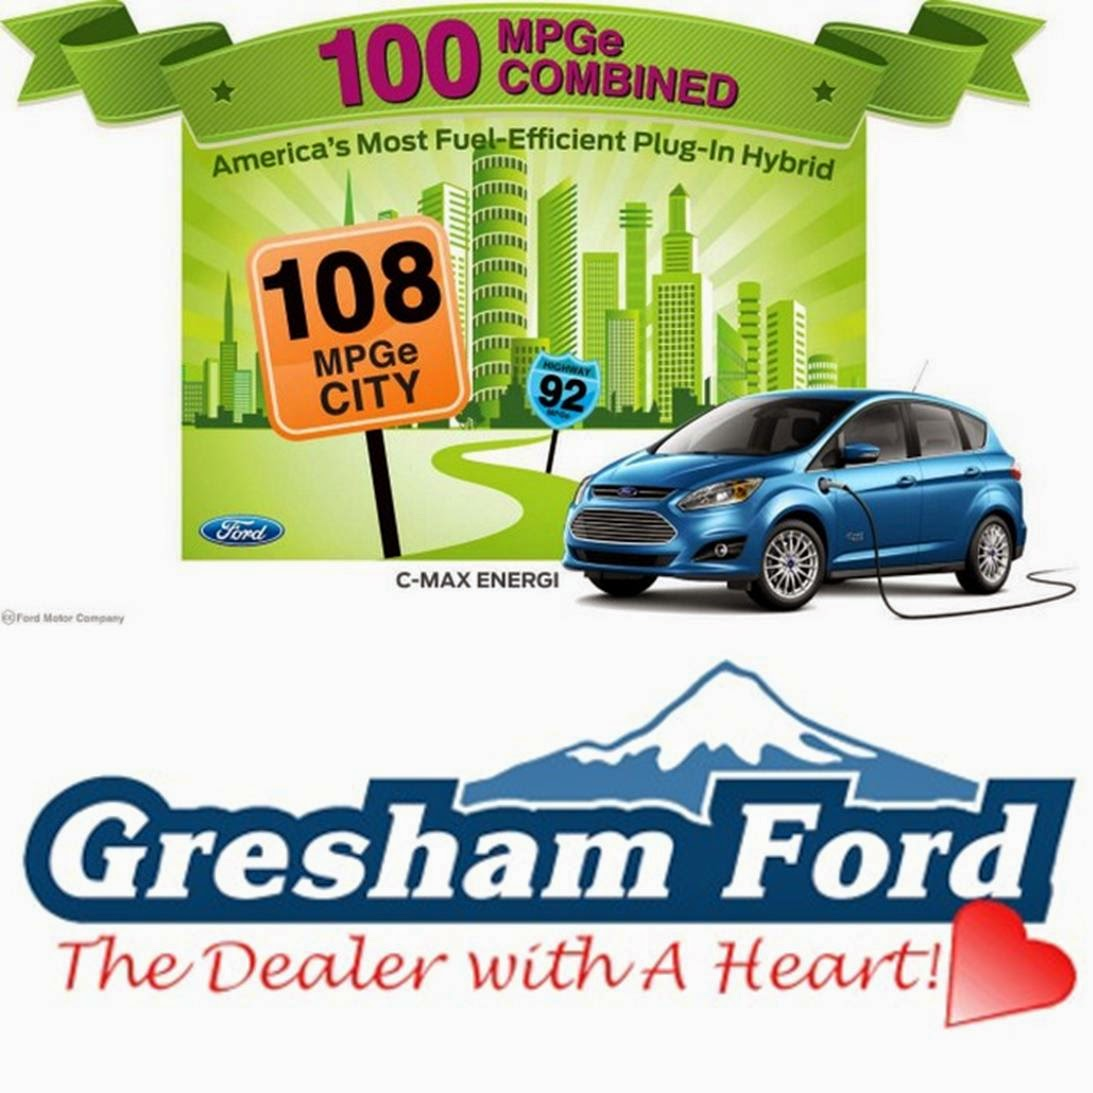 Gresham Ford Making Going GREEN Easy!: Charging Your C-Max